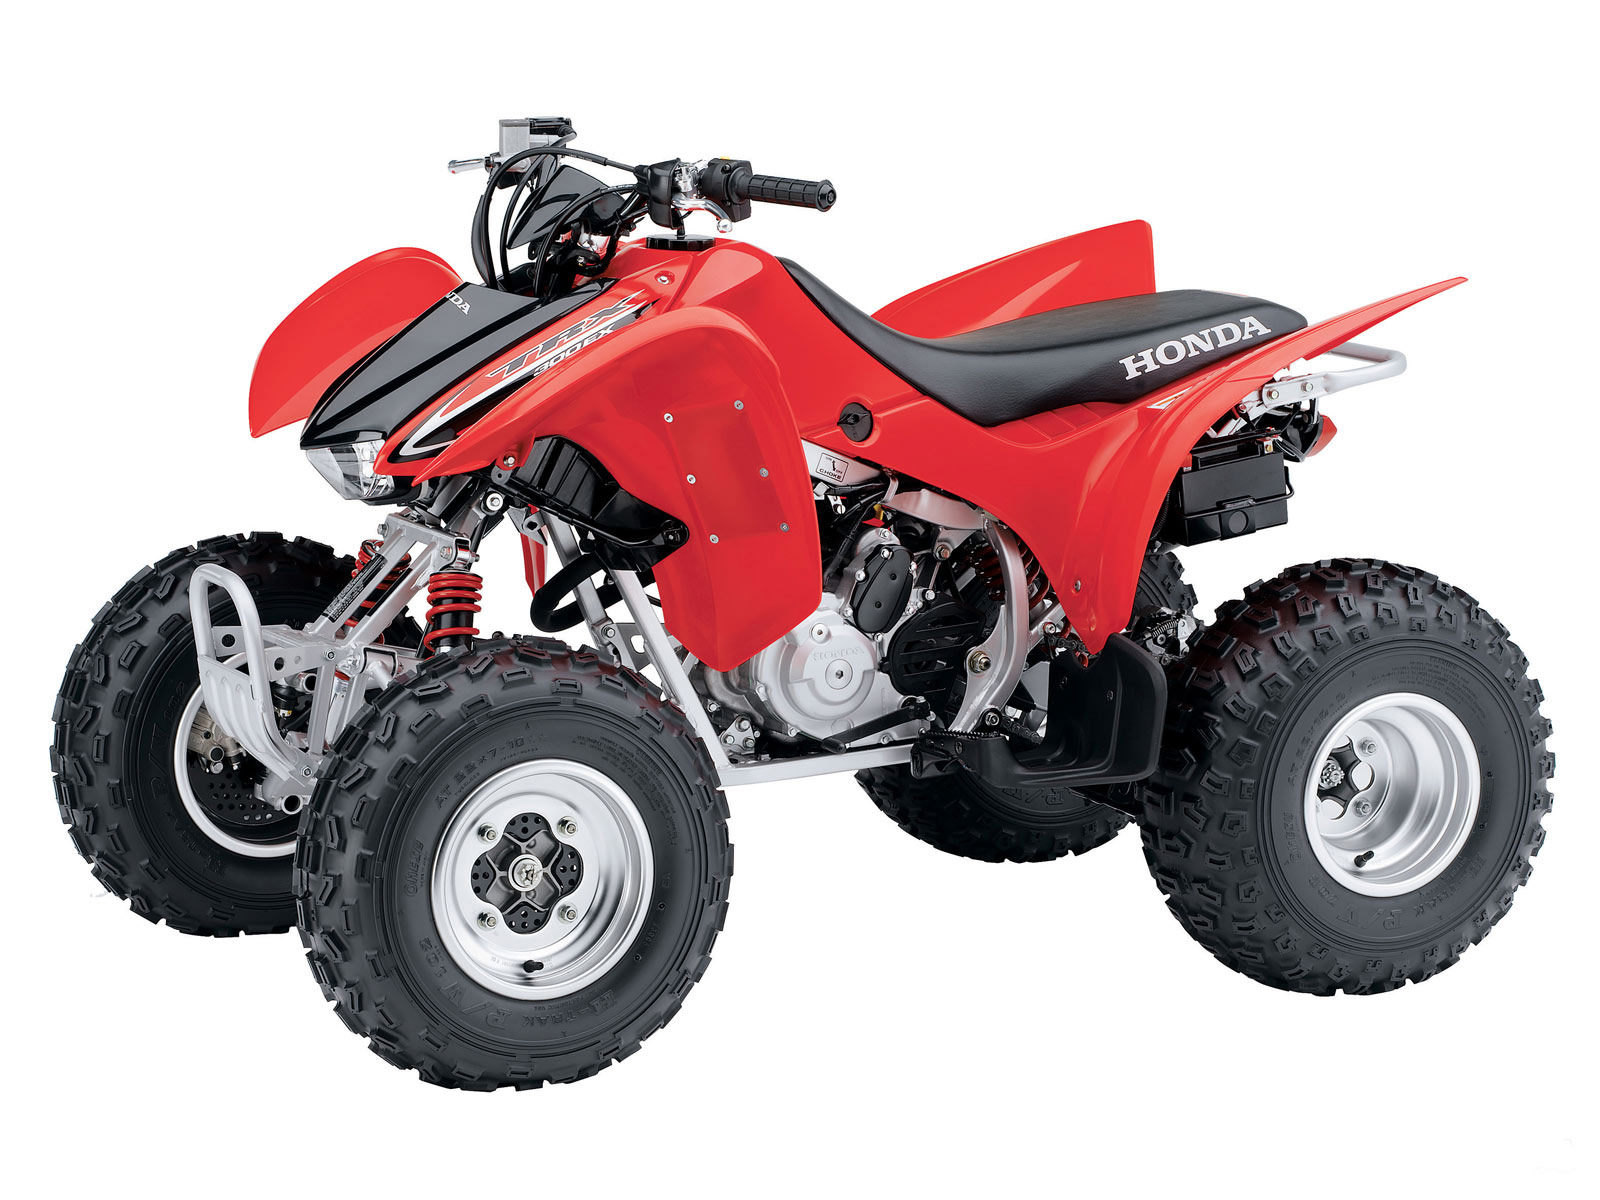 2008 honda trx300ex accident lawyers information rh atv pictures blogspot com